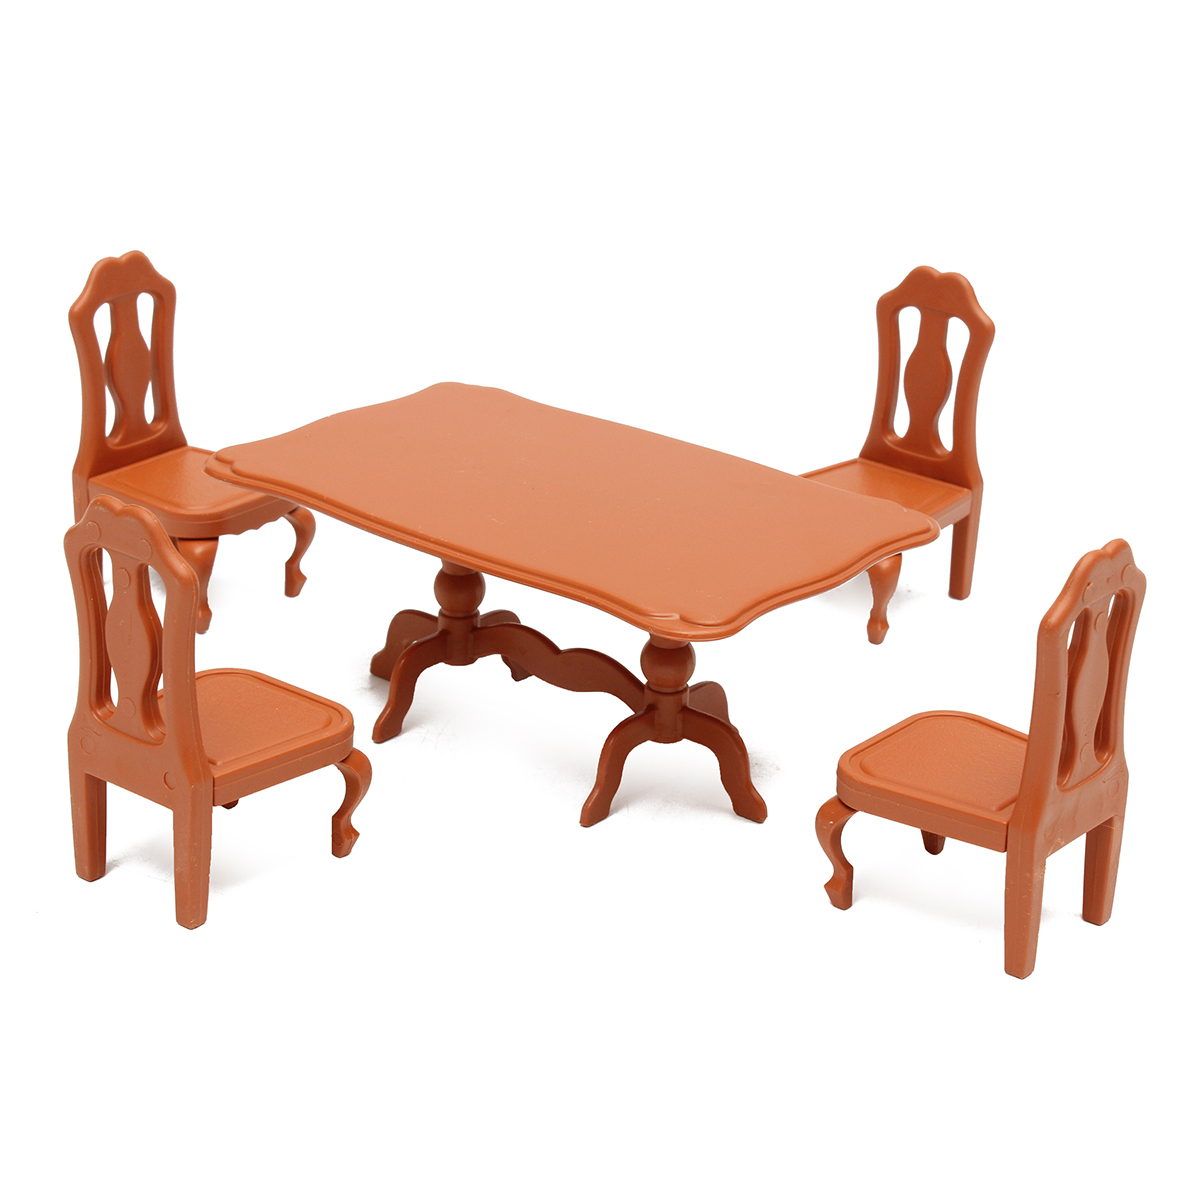 Table Plastic Miniature Doll House Dollhouse Furniture Set Living Room Kitchen Decoration